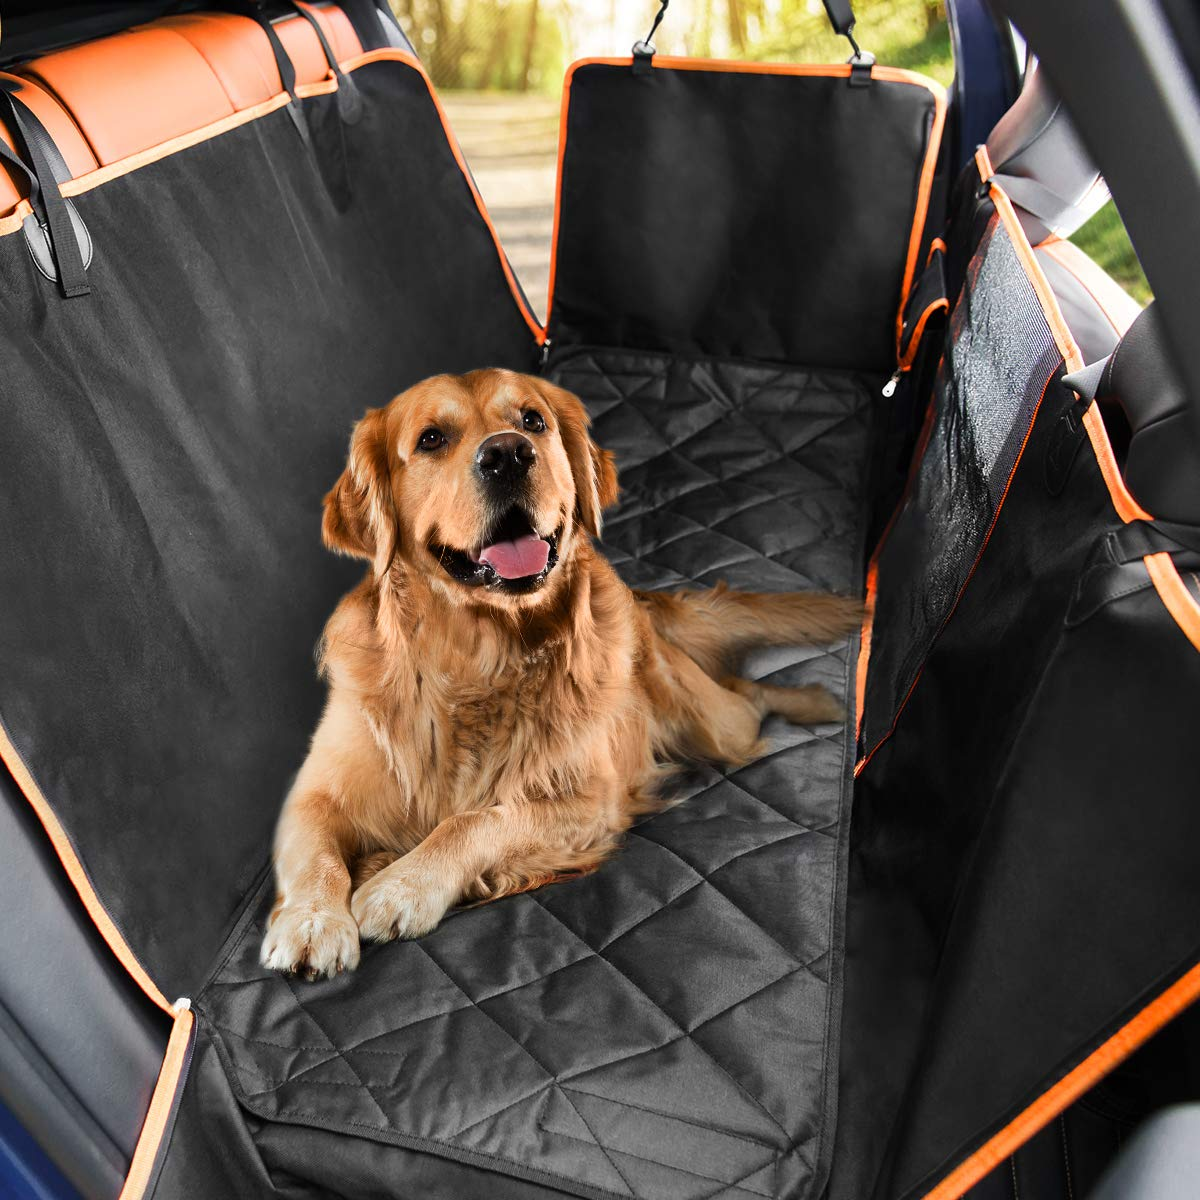 Dog Car Seat Covers with Mesh Visual Window Waterproof Scratchproof Non-Slip Dog Hammock for Back Seat with 2 Storage Pockets Pet Car Seat Cover for Cars Trucks and SUVs